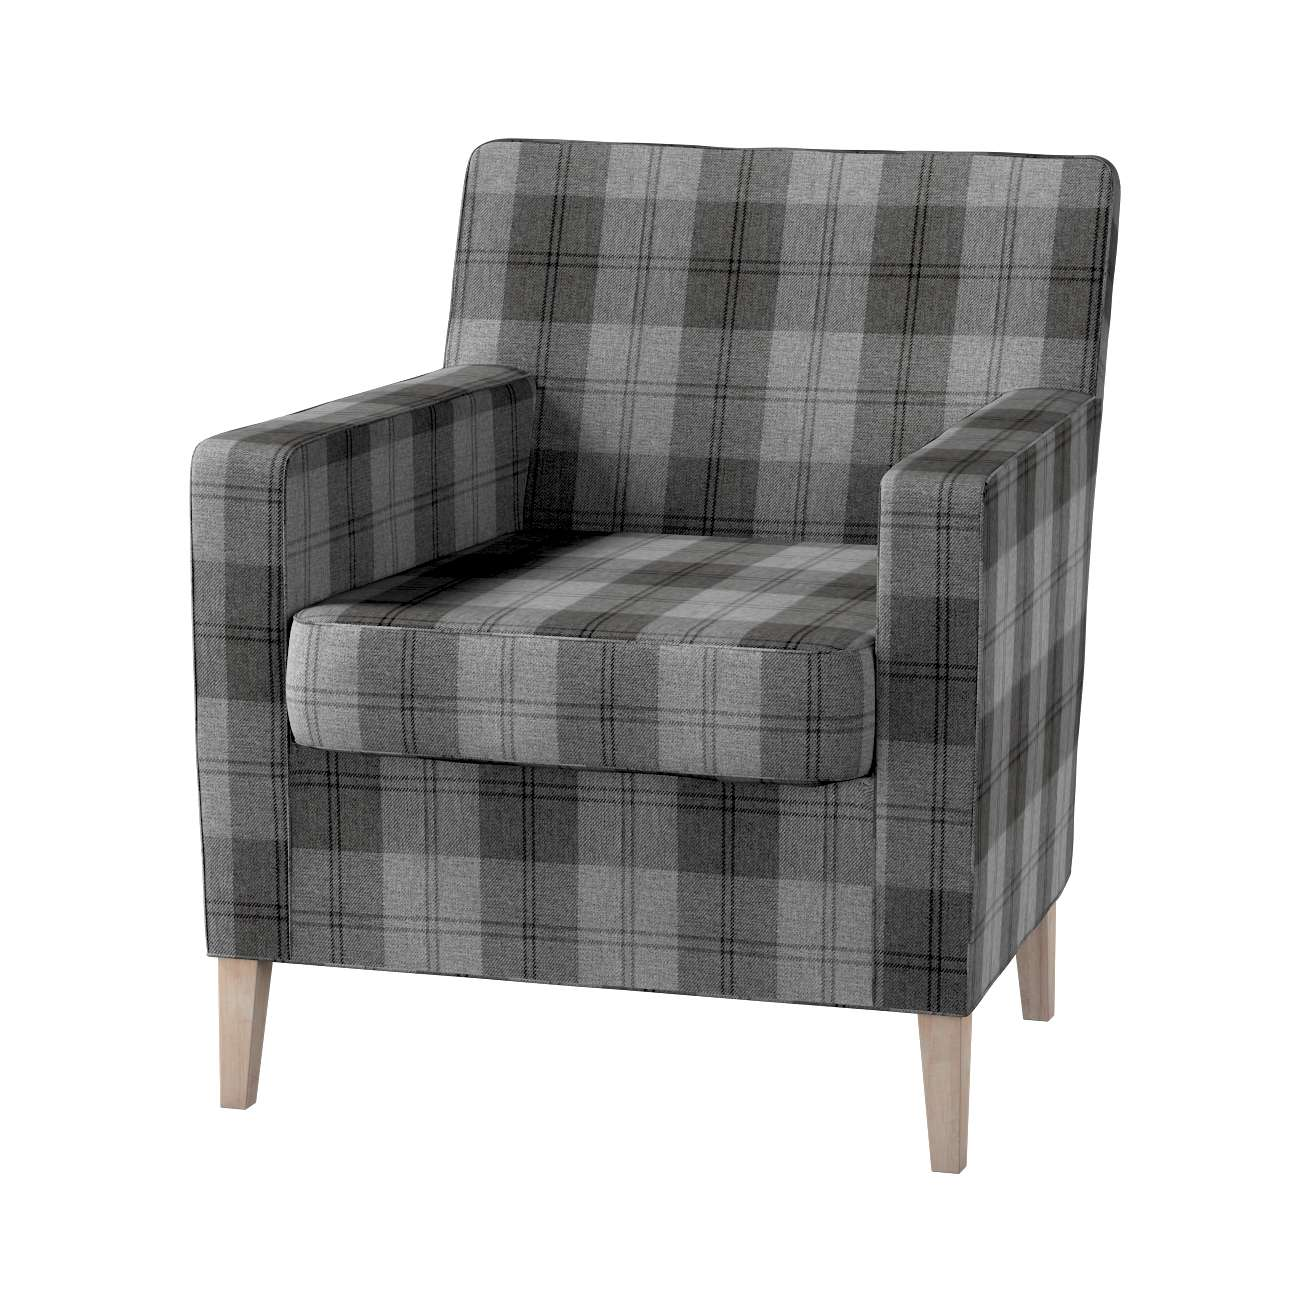 Karlstad tall chair cover Karlstad armchair cover in collection Edinburgh, fabric: 115-75